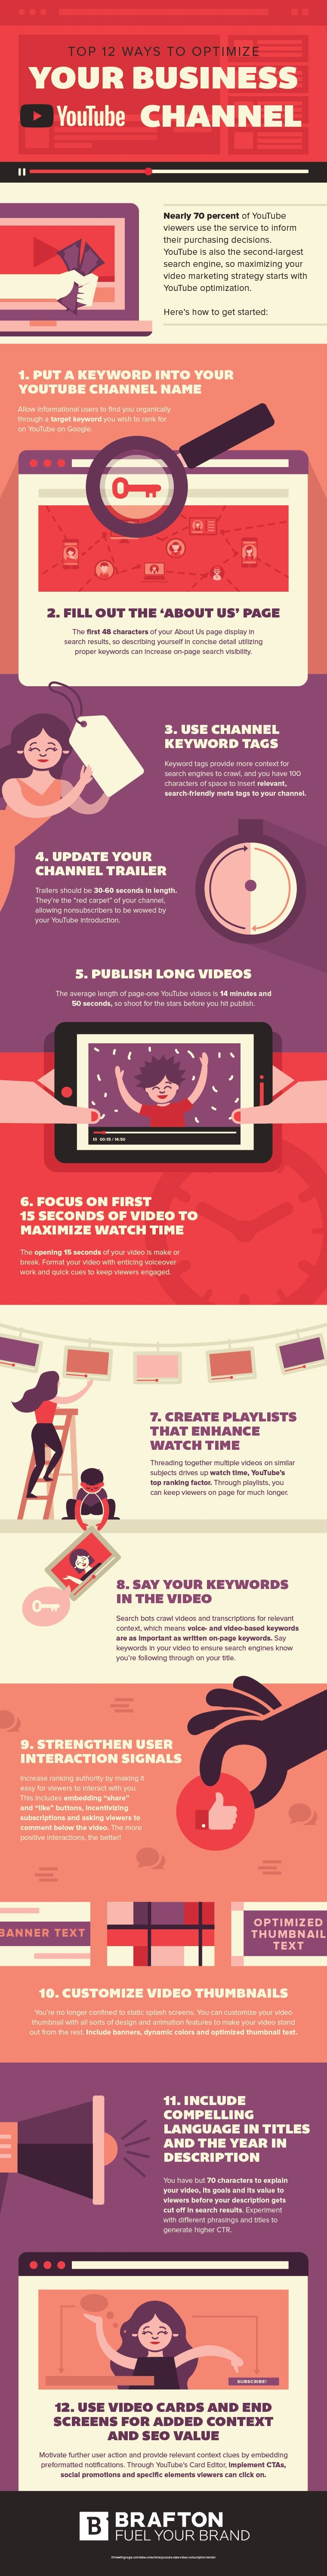 Infographic: Optimize Business YouTube Channel